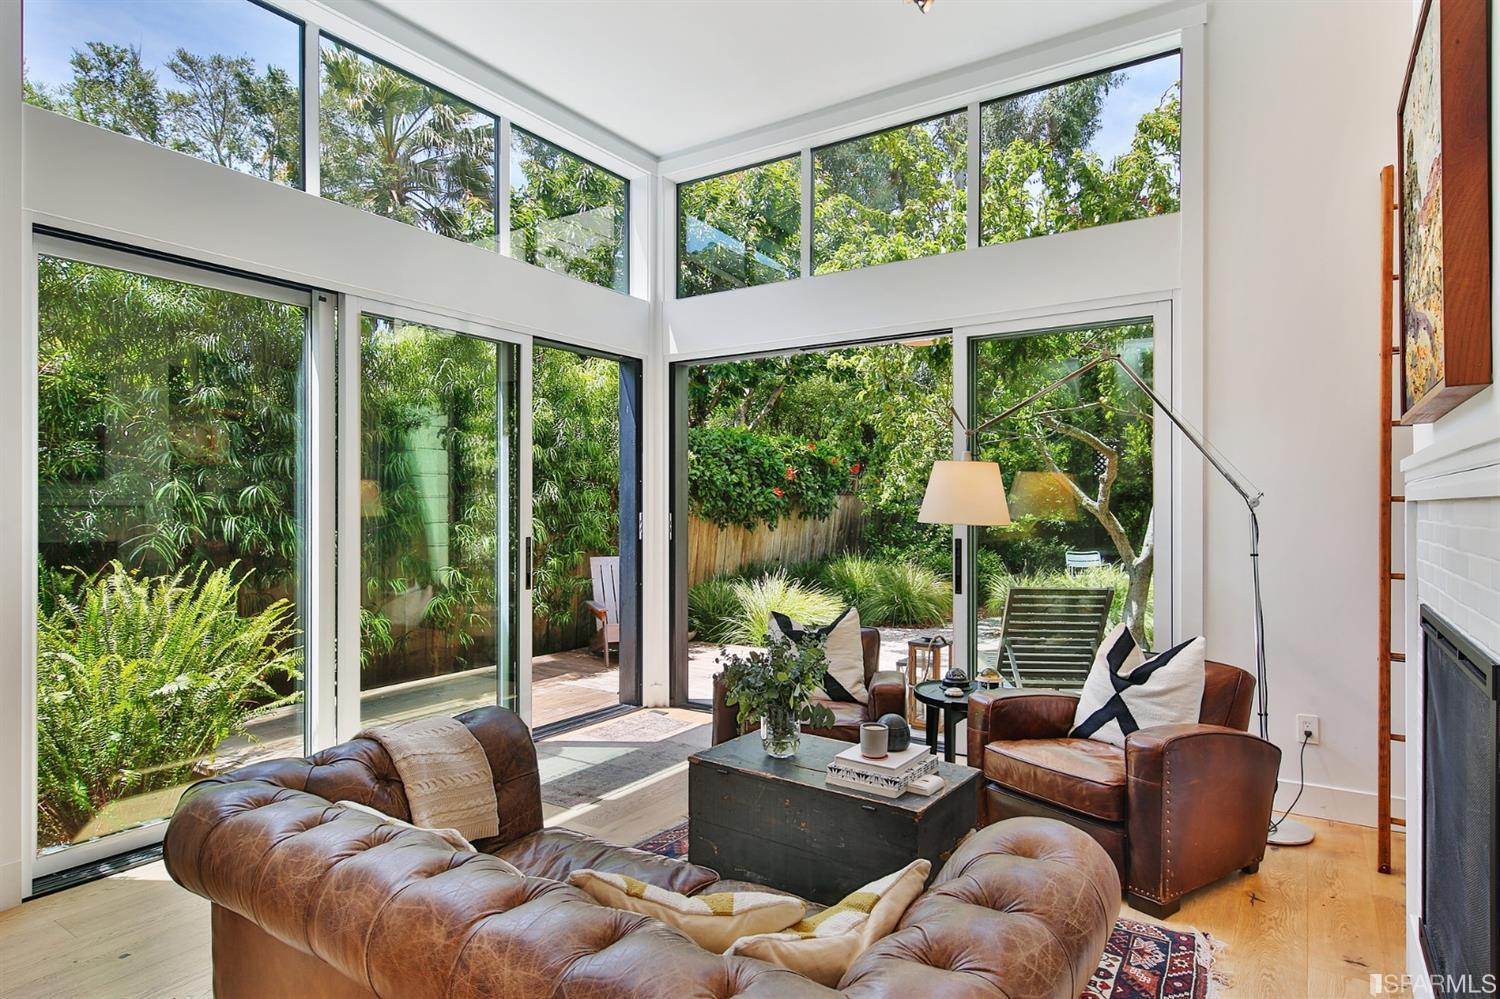 Brown couch set in living room area with large floor to ceiling windows